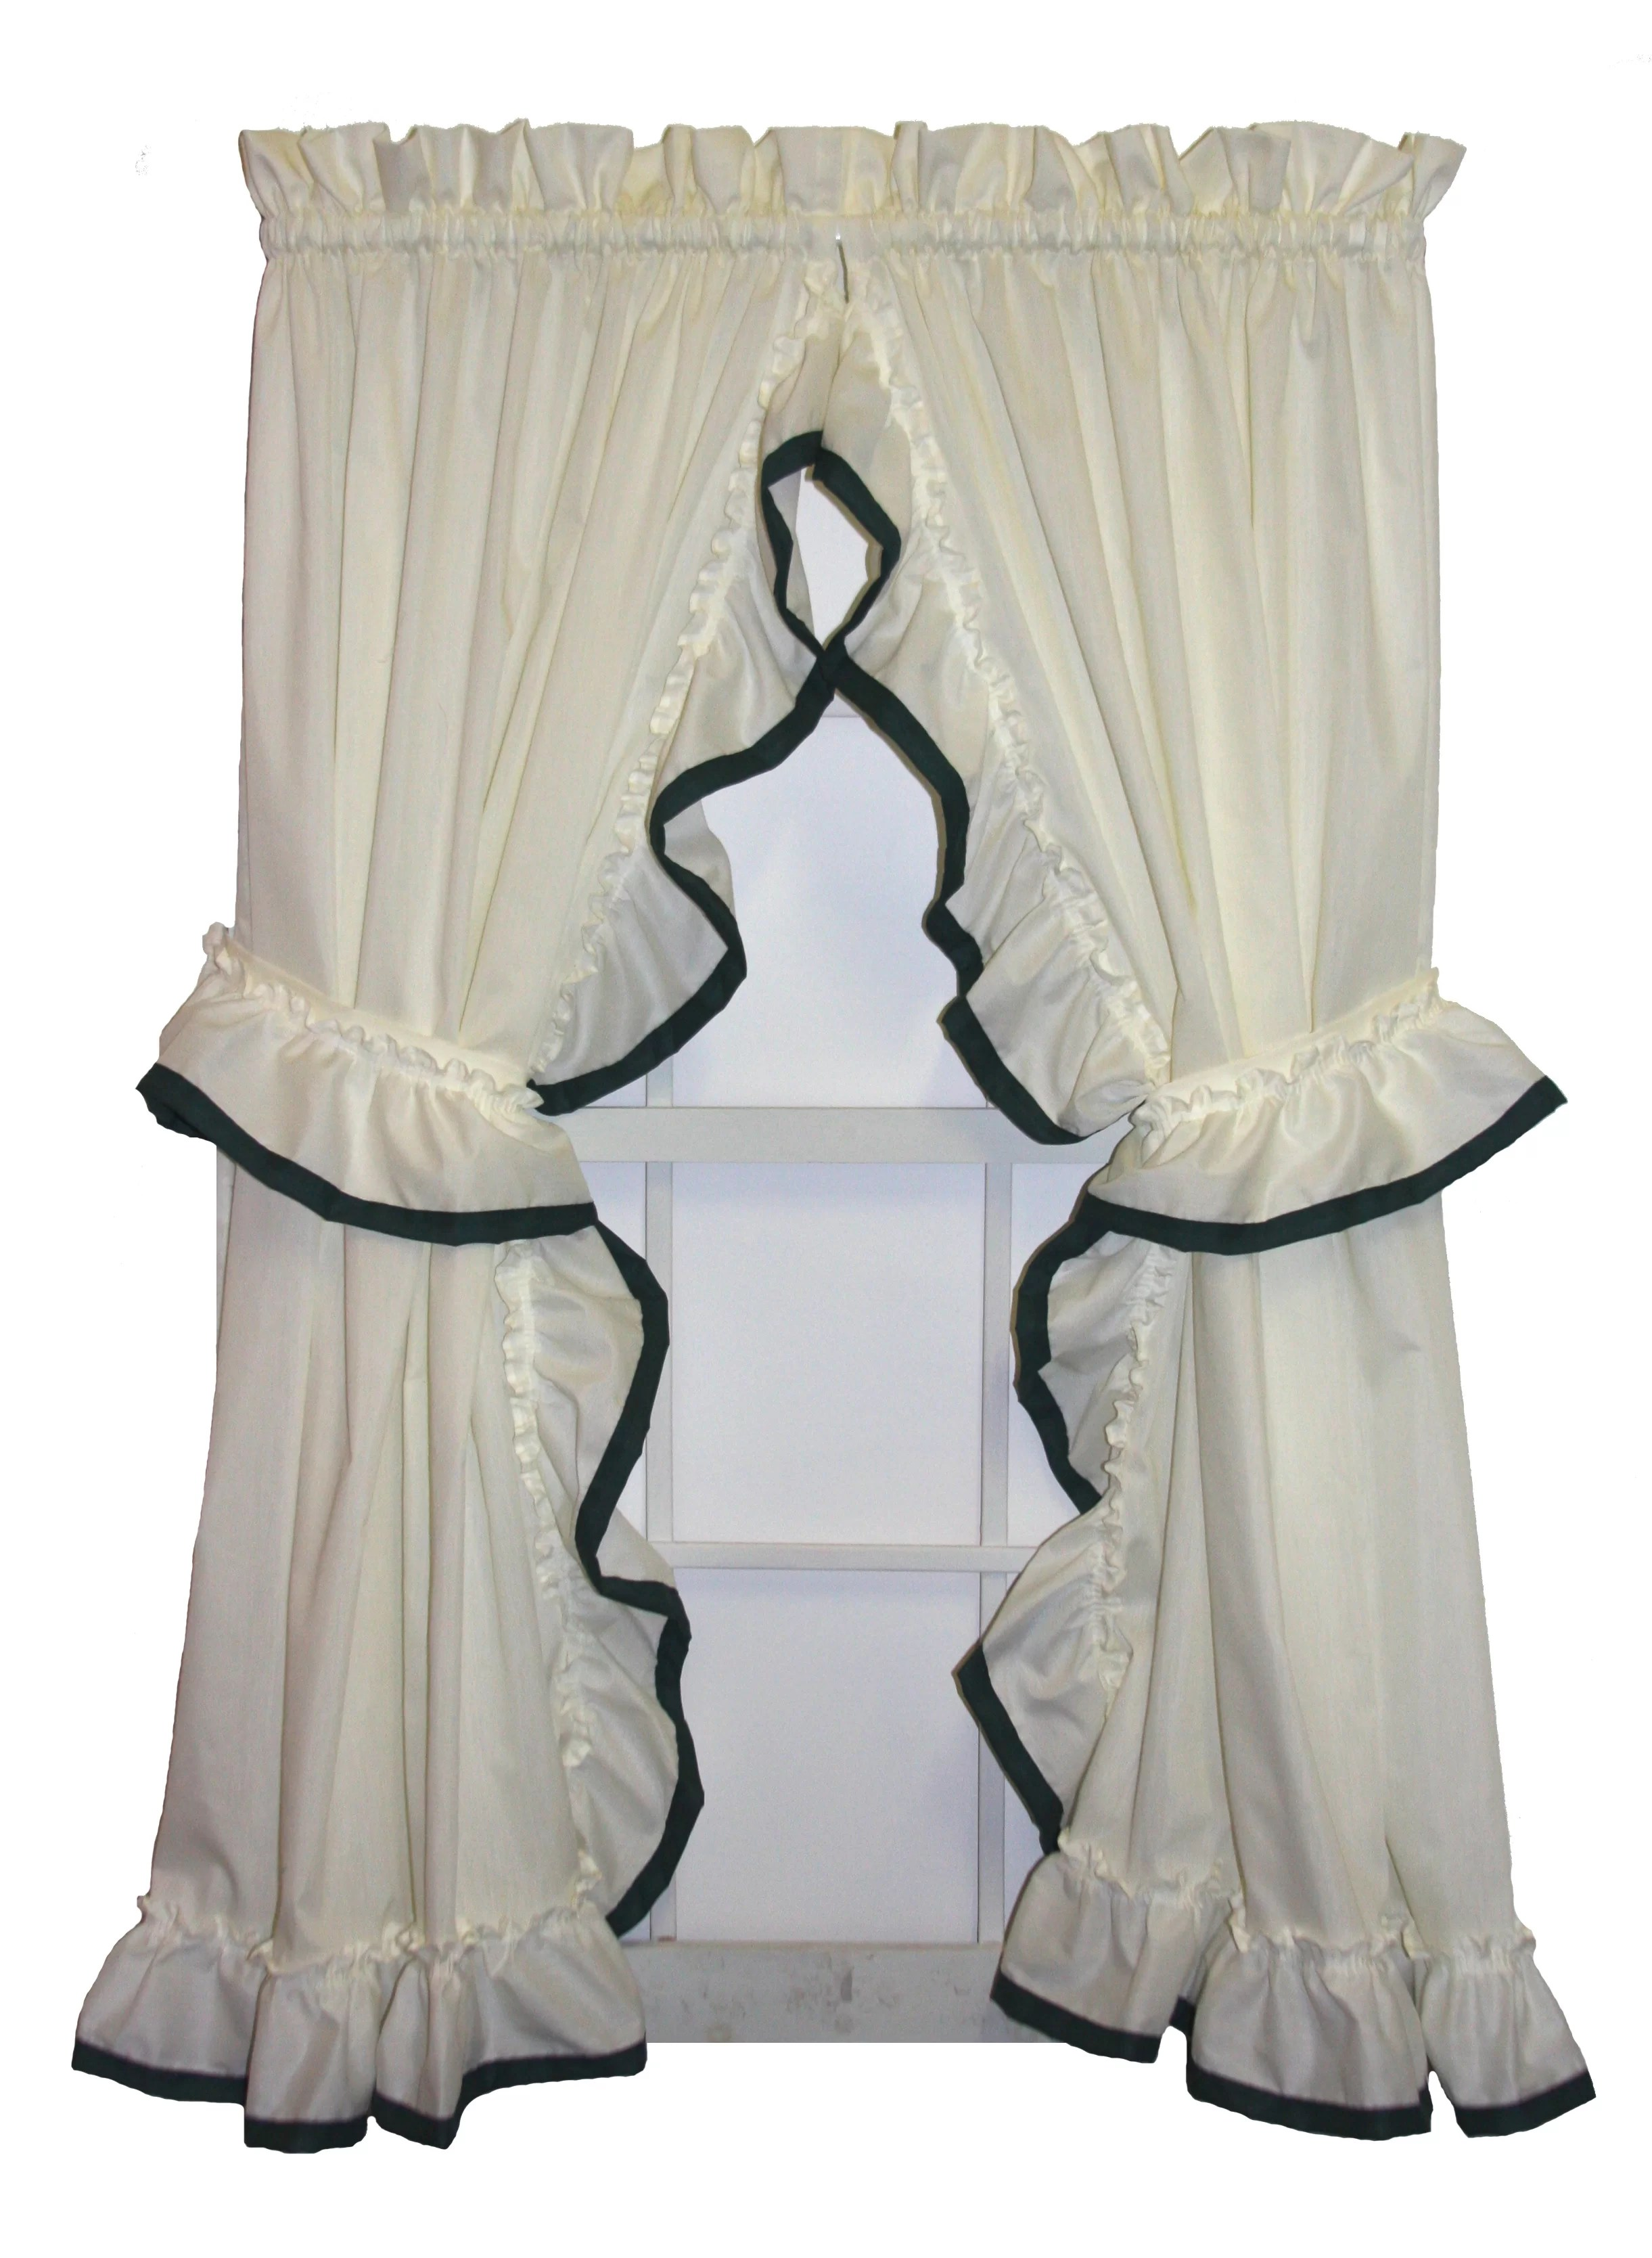 Ruffle Curtain Panel Howells Banded Edge Ruffled Priscilla Curtain Panels Pair